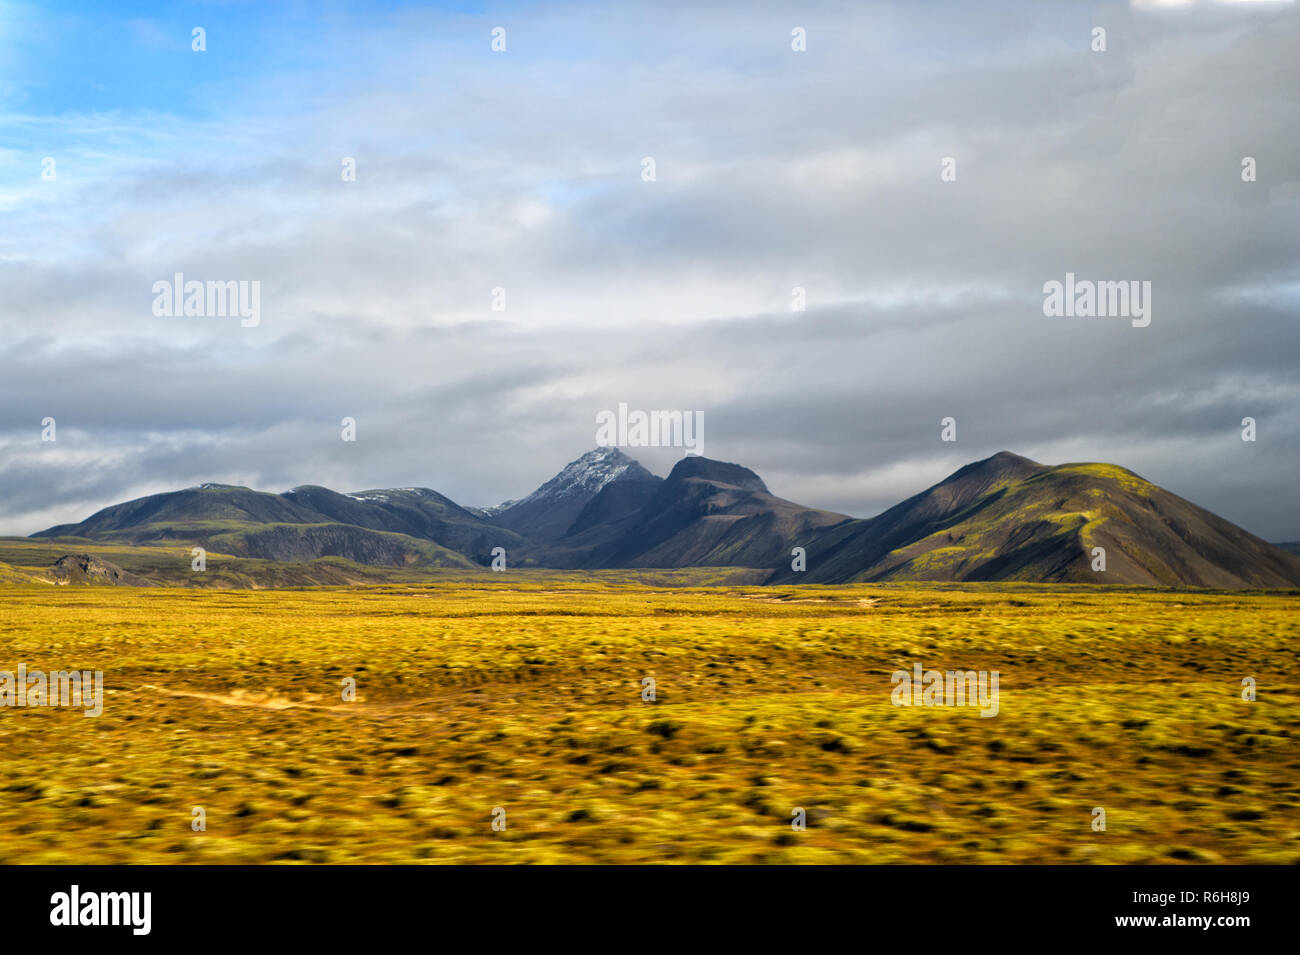 Highlands of Iceland concept. Haukadalur valley in Iceland. Beautiful landscape in valley. Peaceful nature environment. Valley landscape sunny autumn day cloudy sky. Amazing beauty of valley. Stock Photo